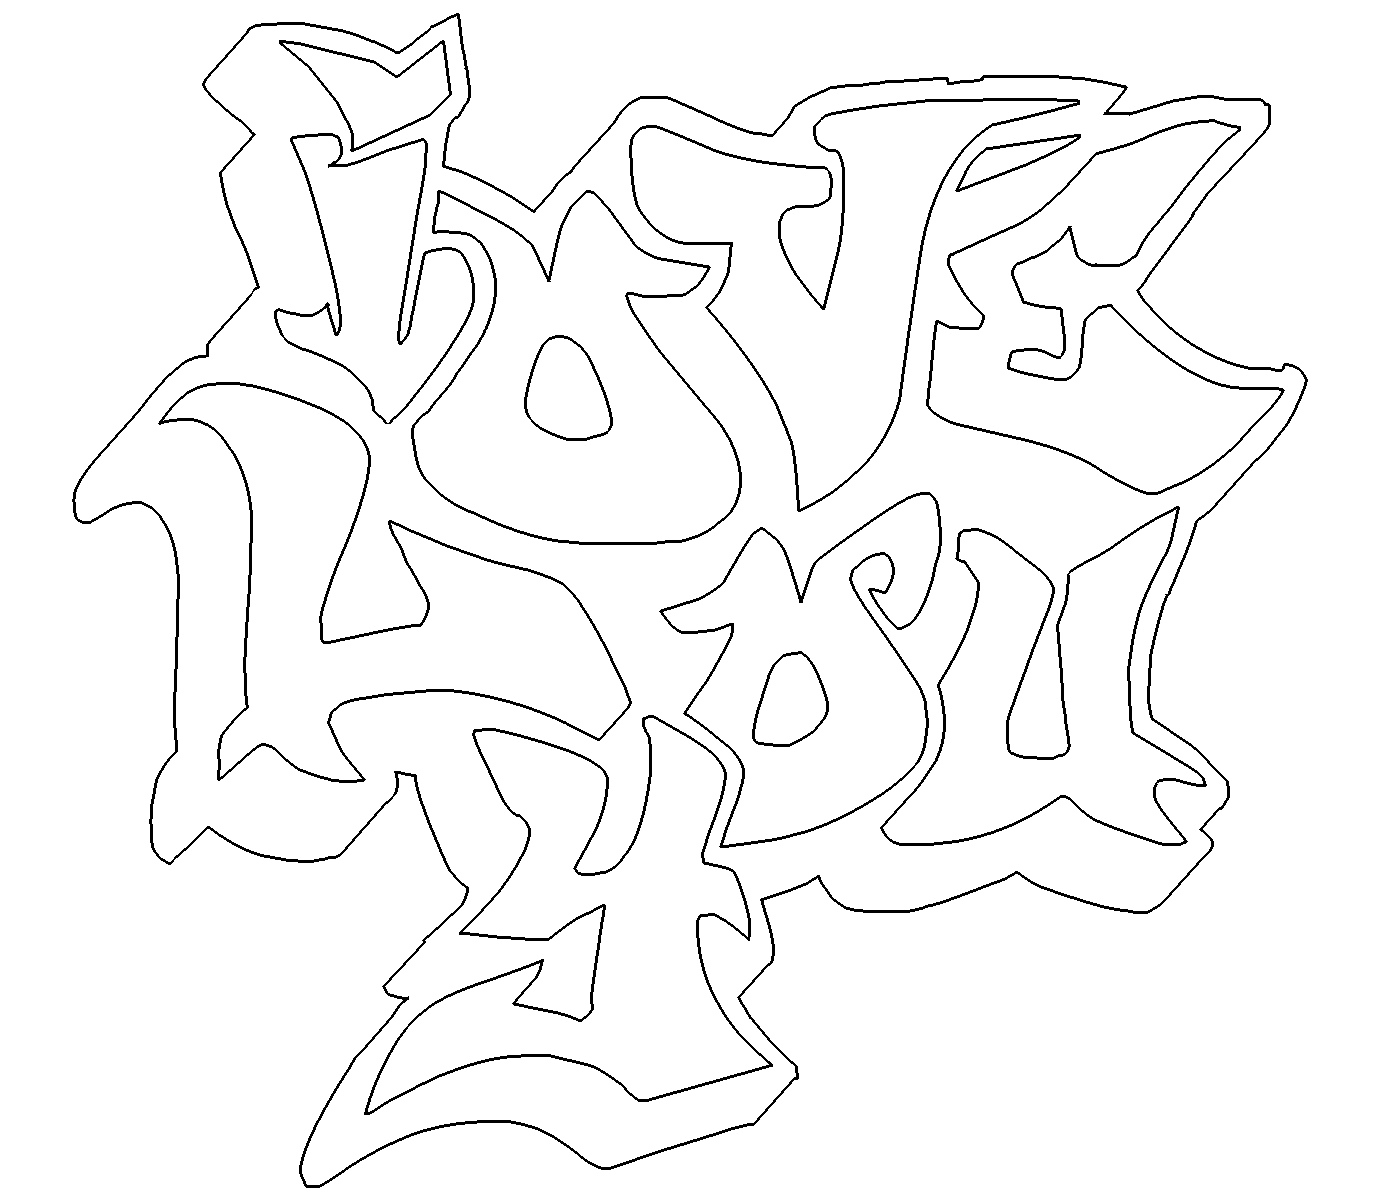 get inspired for love graffiti coloring pages